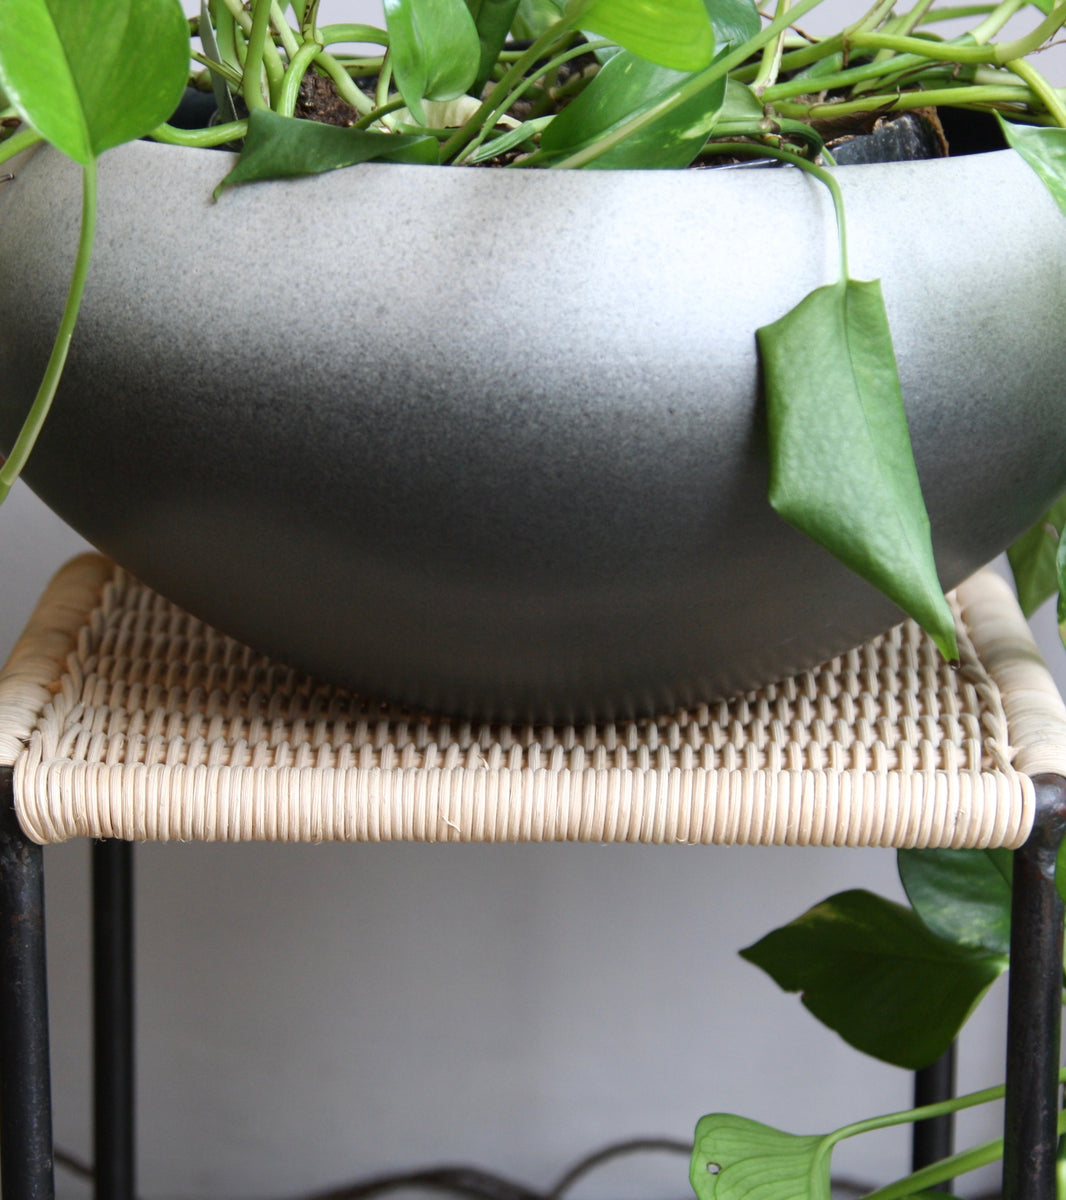 Medium One Off Onion Shaped Planter <br>in Gradient Grey Glaze <br>by KH Würtz